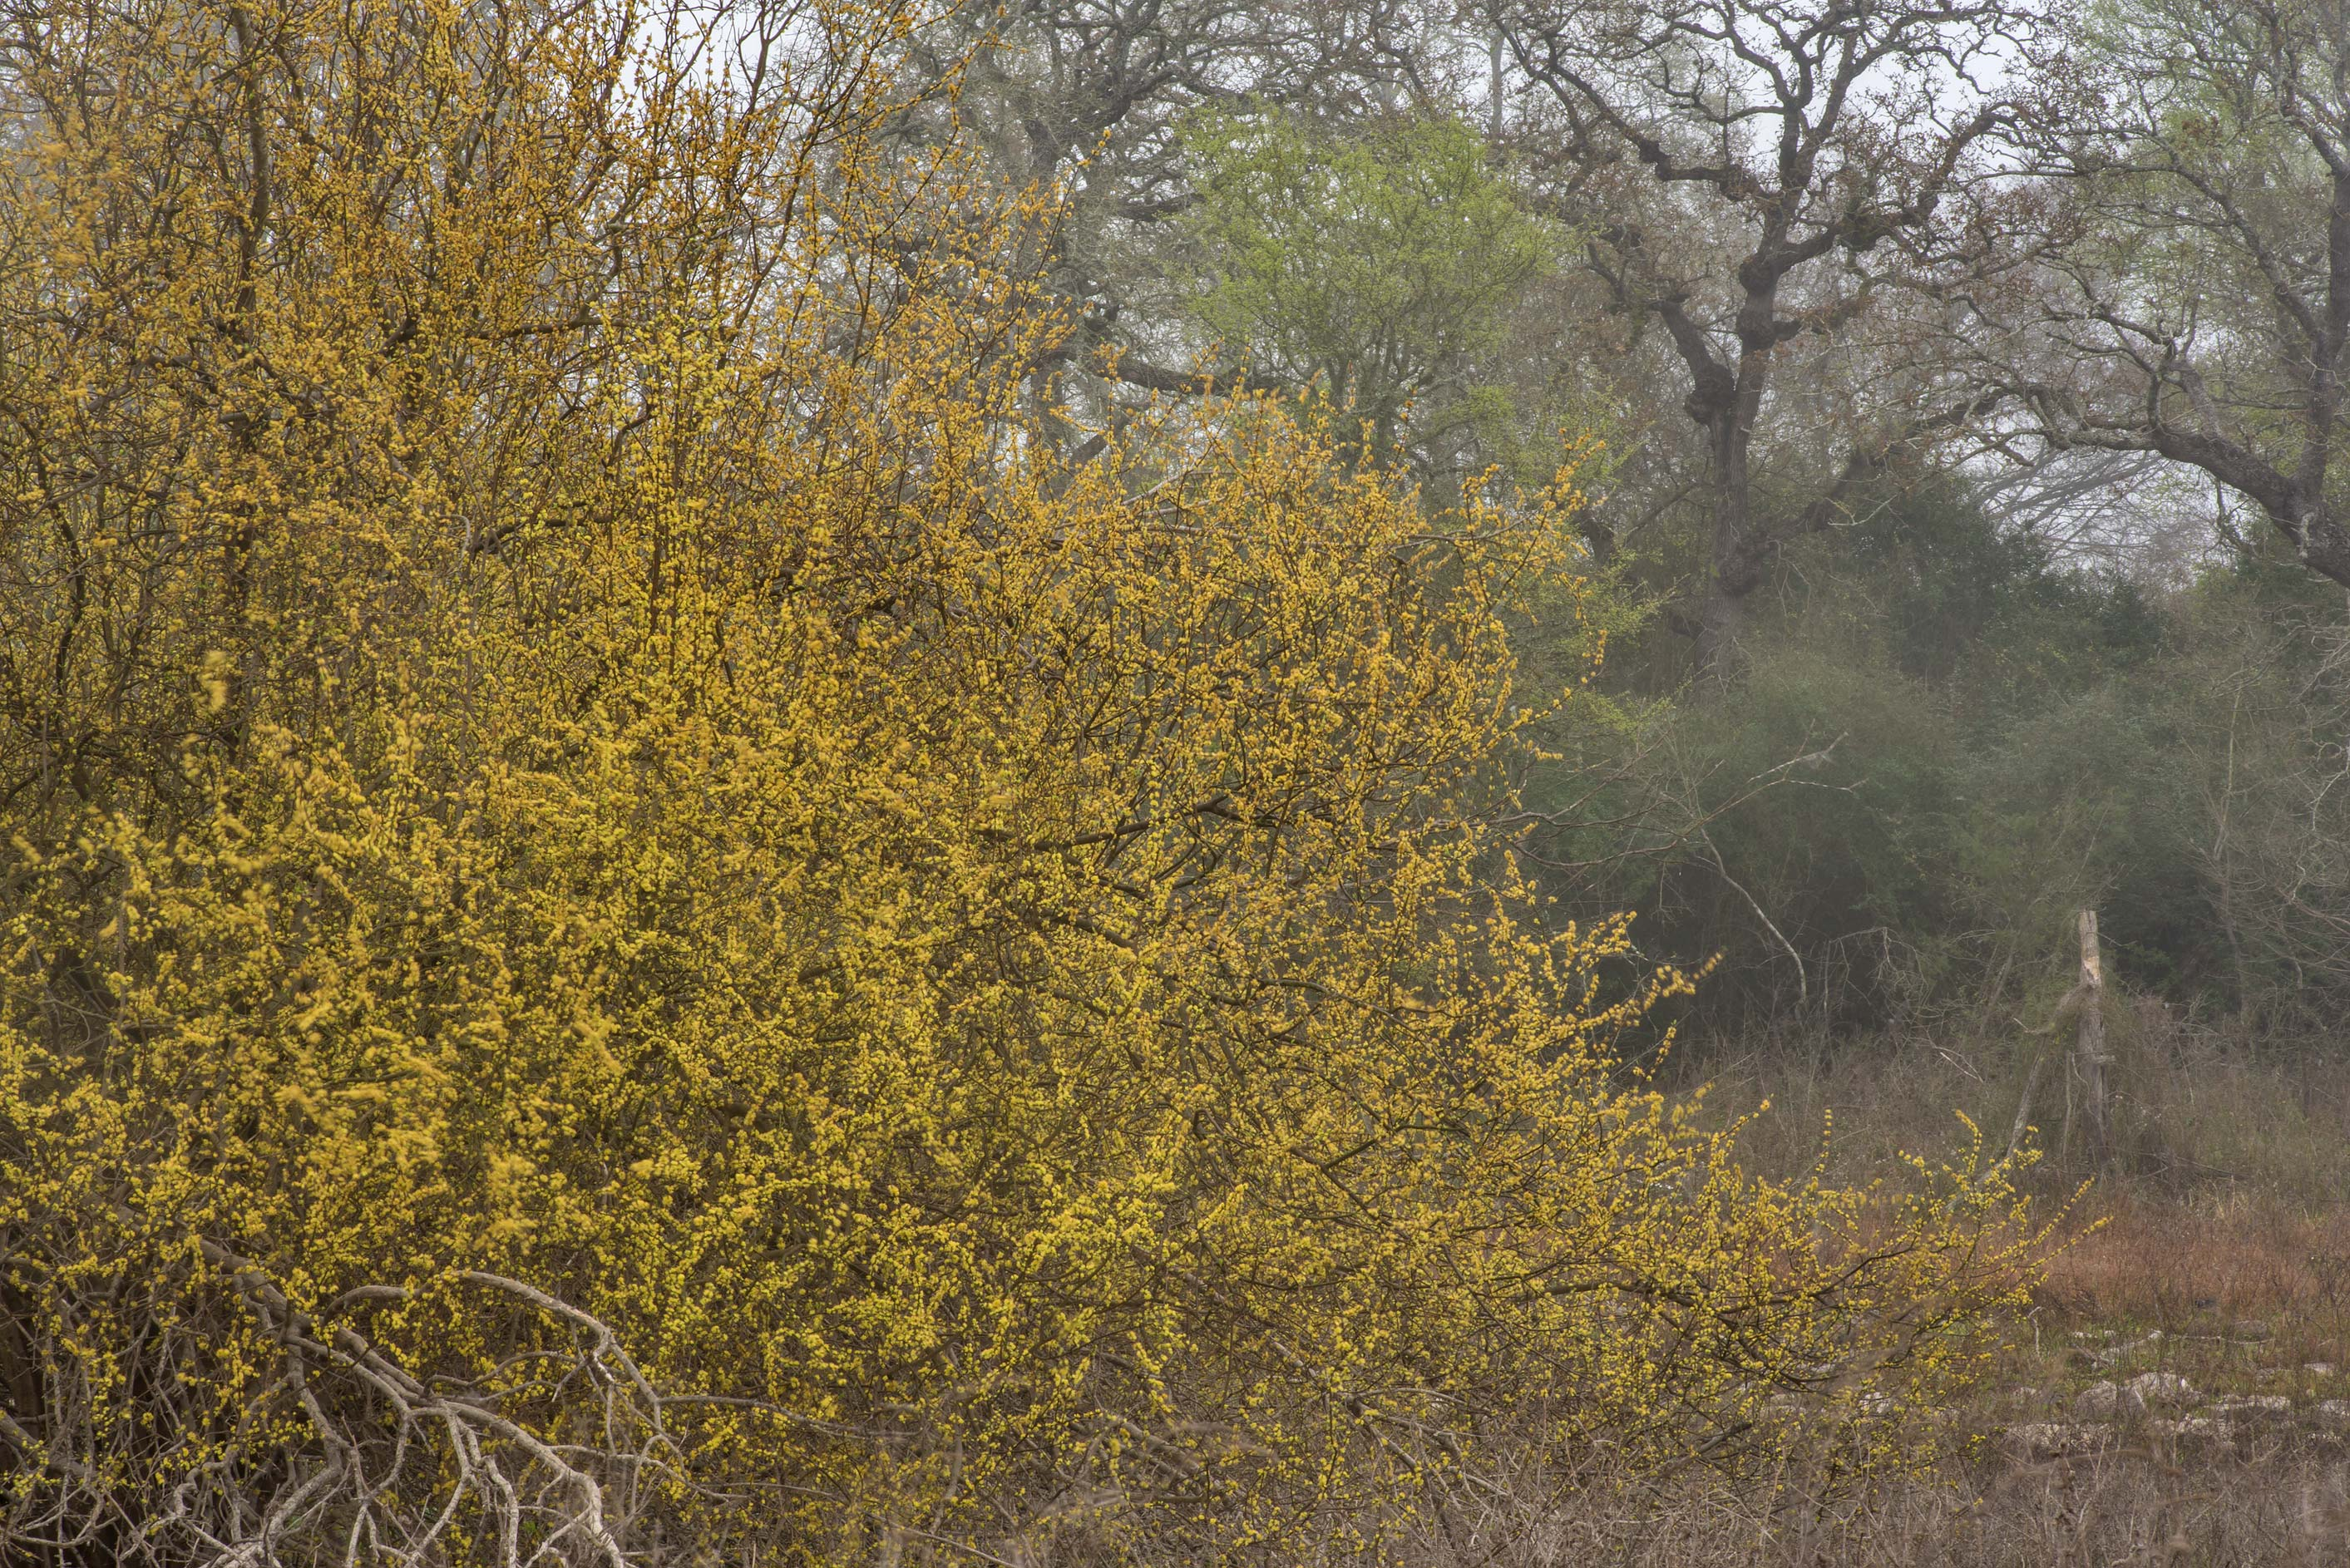 Masses of yellow flowers on a bush near the lake...of Somerville Lake State Park. Texas